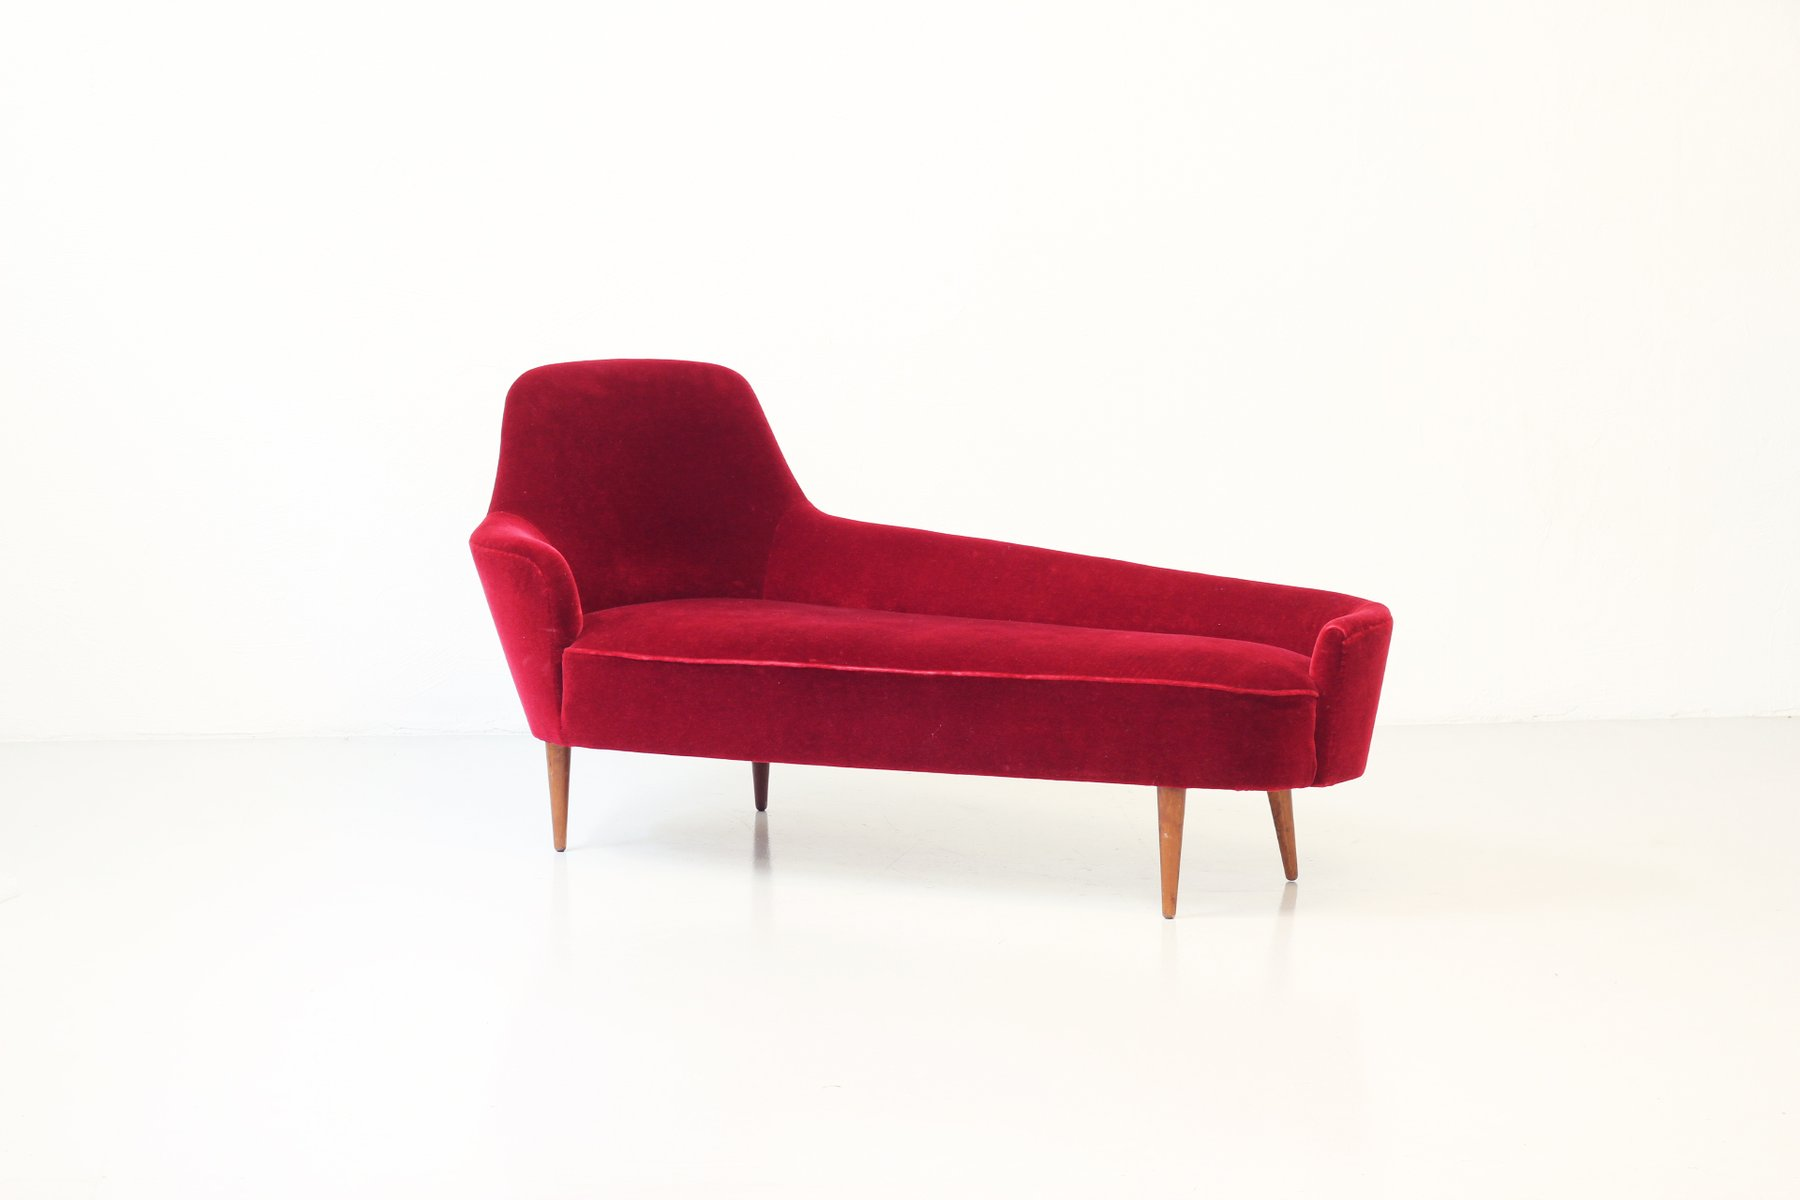 Singoalla chaise lounge by gillis lundgren for ikea 1961 for sale at pamono - Chaise longue jardin ikea ...